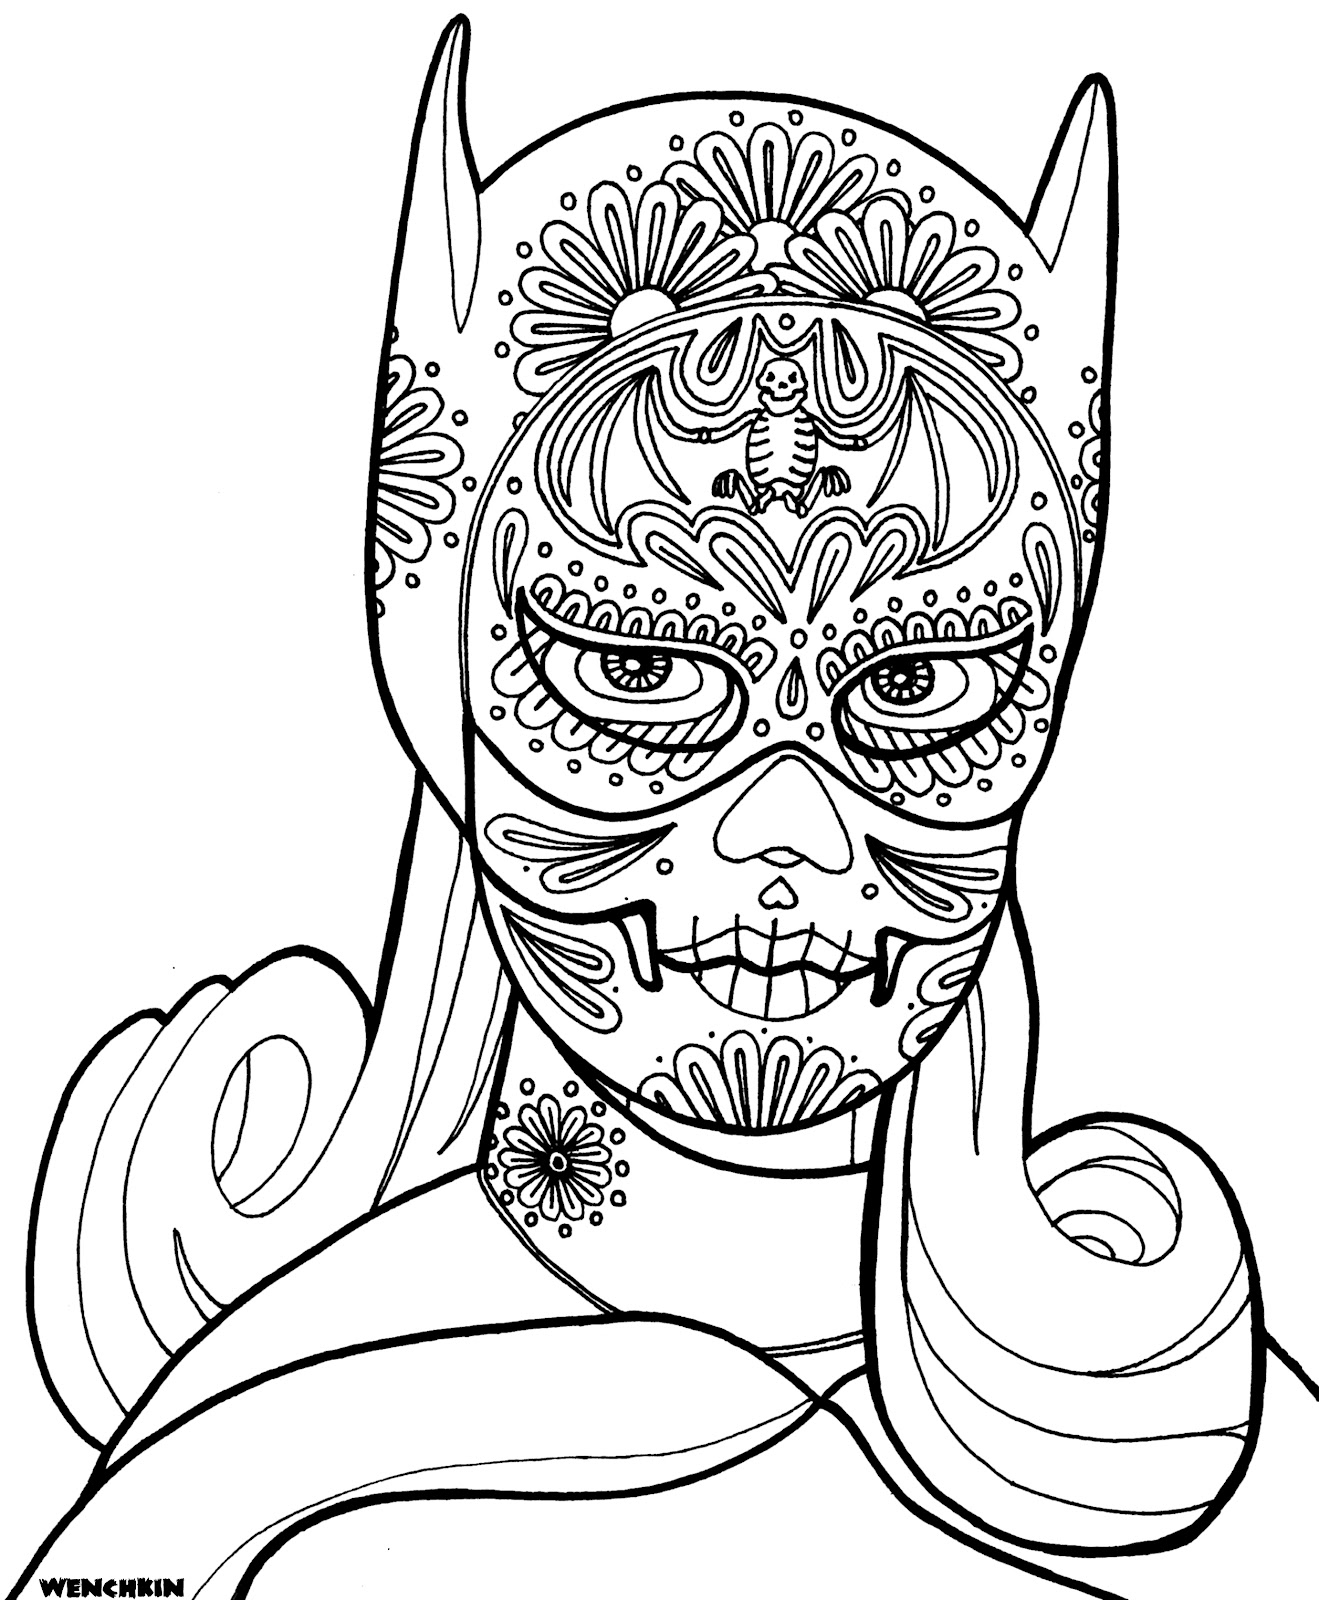 coloring pages of skulls - yucca flats n m february 2012